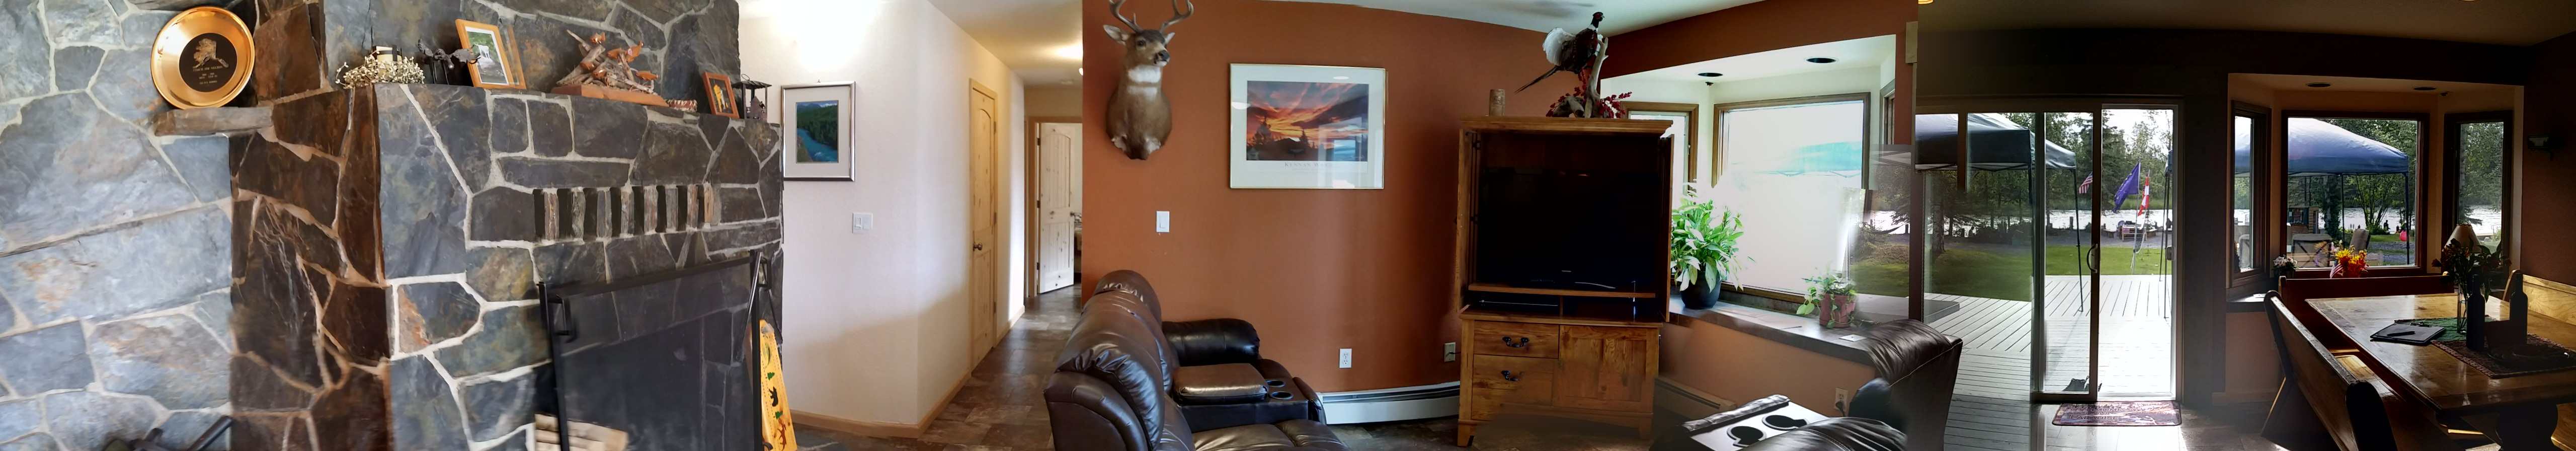 Living room panorama with Kenai River view.